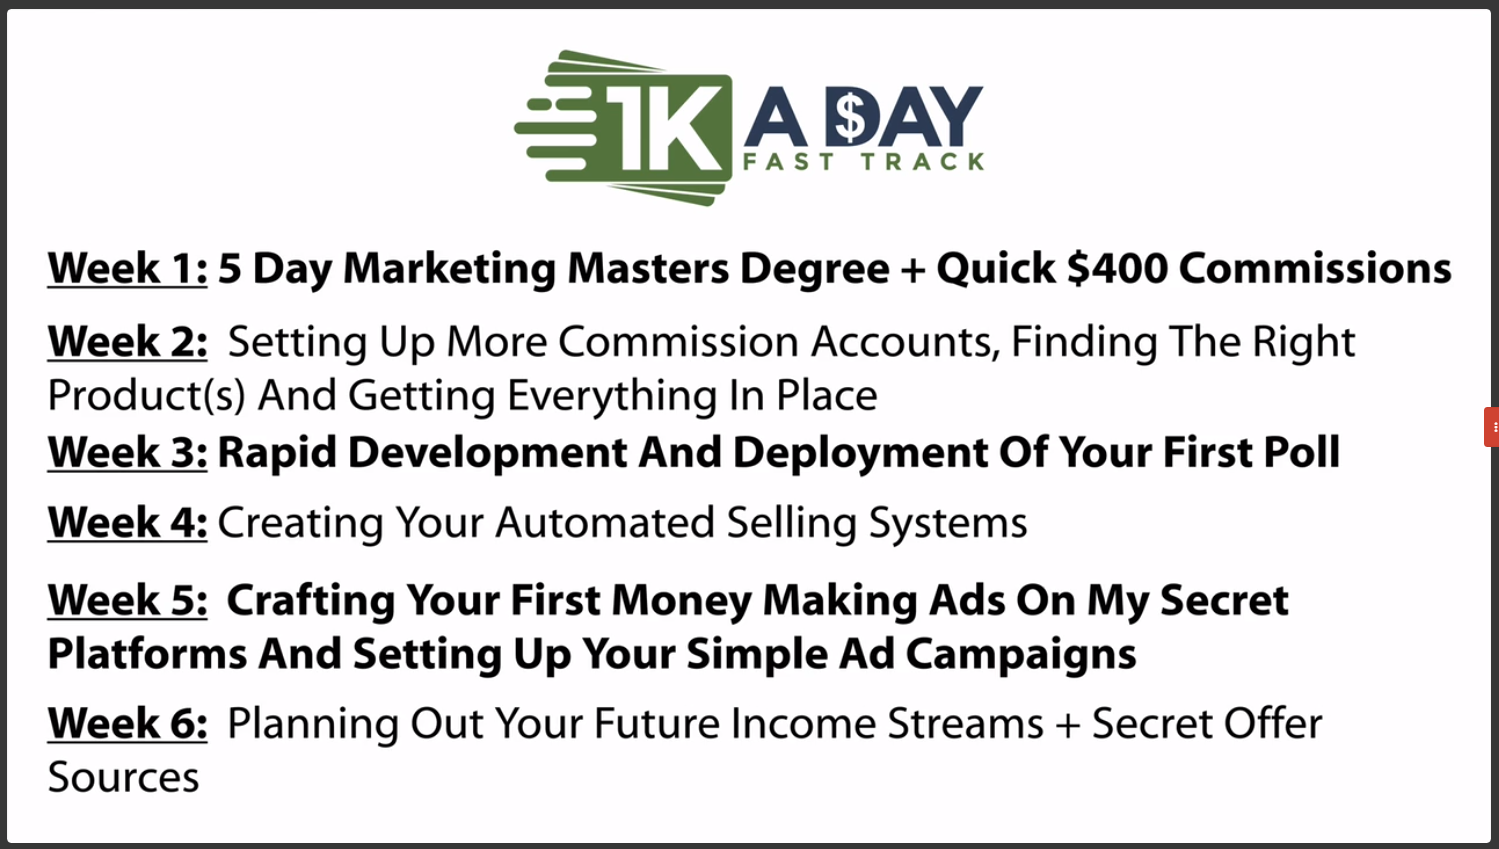 Training Program 1k A Day Fast Track Coupons For Best Buy March 2020